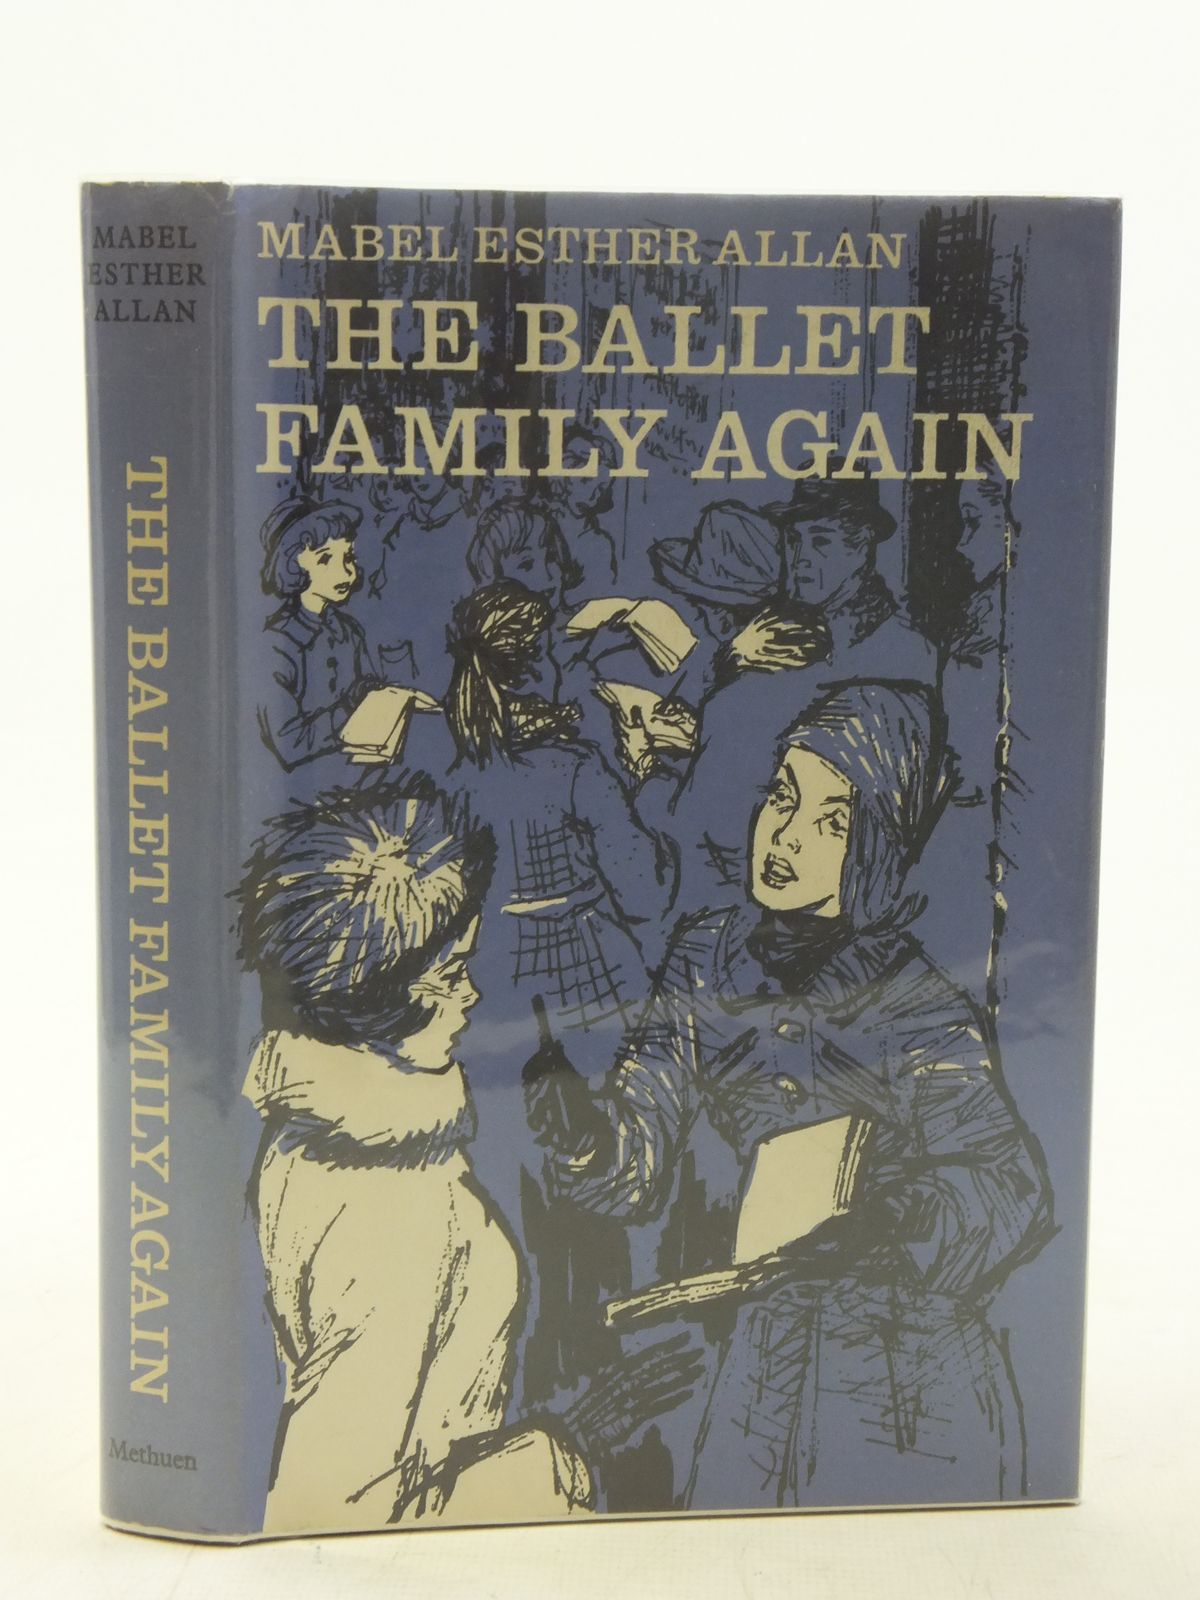 Photo of THE BALLET FAMILY AGAIN written by Allan, Mabel Esther illustrated by Whitear, published by Methuen & Co. Ltd. (STOCK CODE: 2117220)  for sale by Stella & Rose's Books